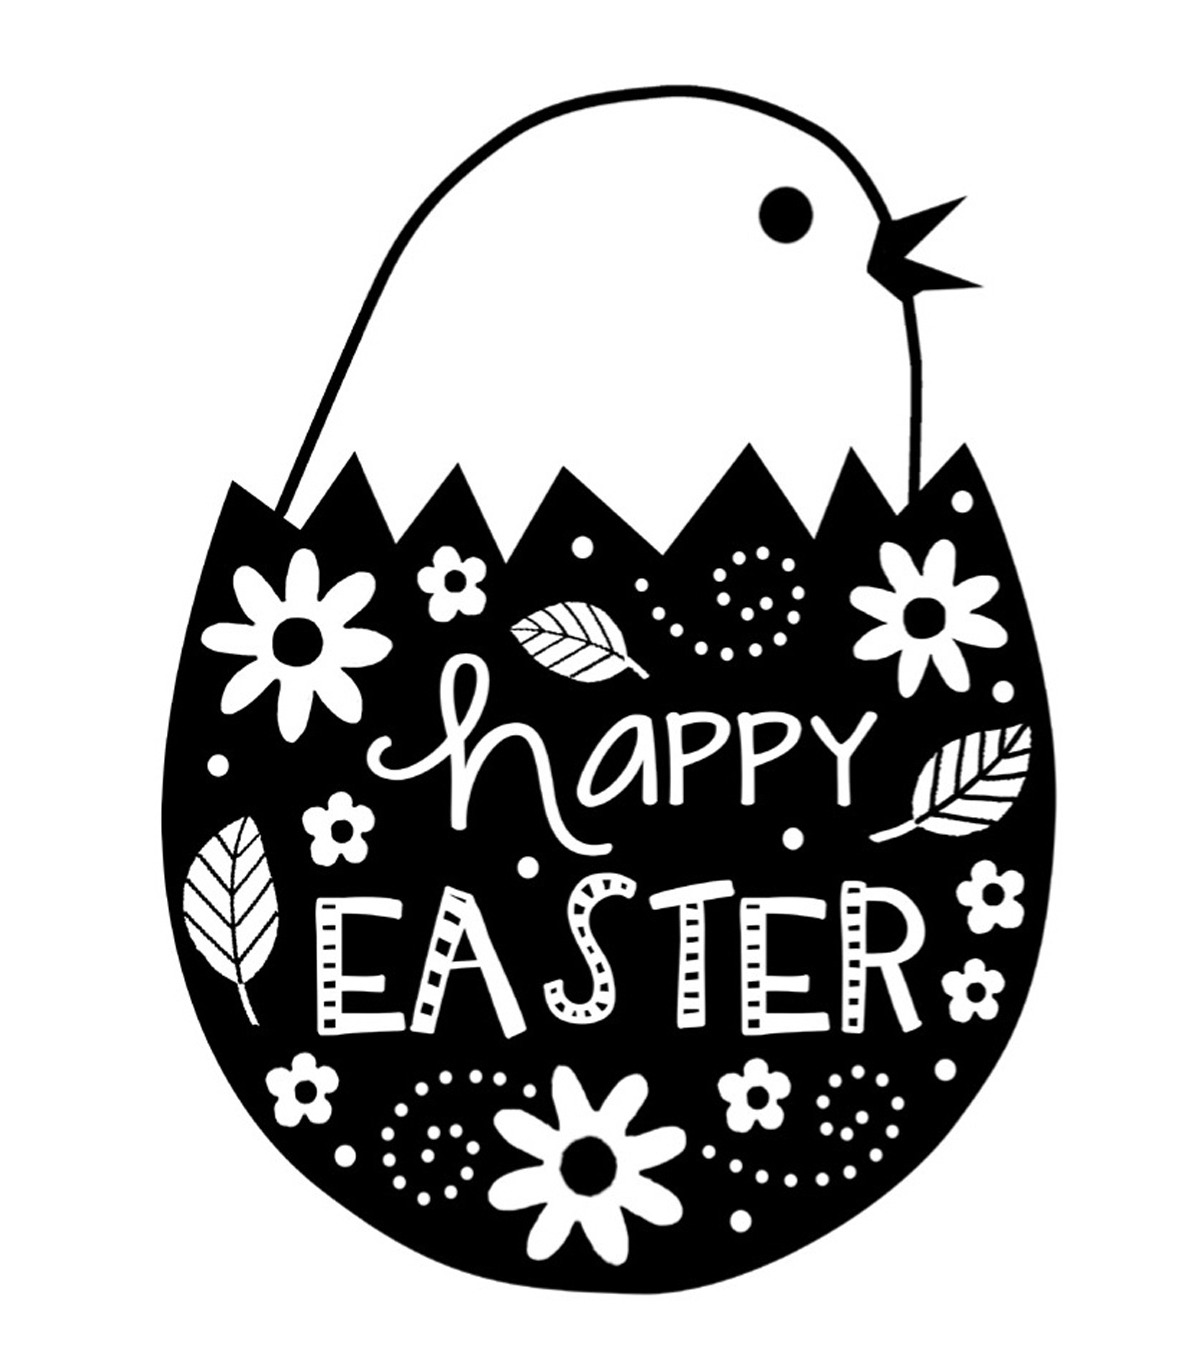 Gourmet Rubber Stamps Happy Easter Egg Cling Stamps 1.88''x1.5''